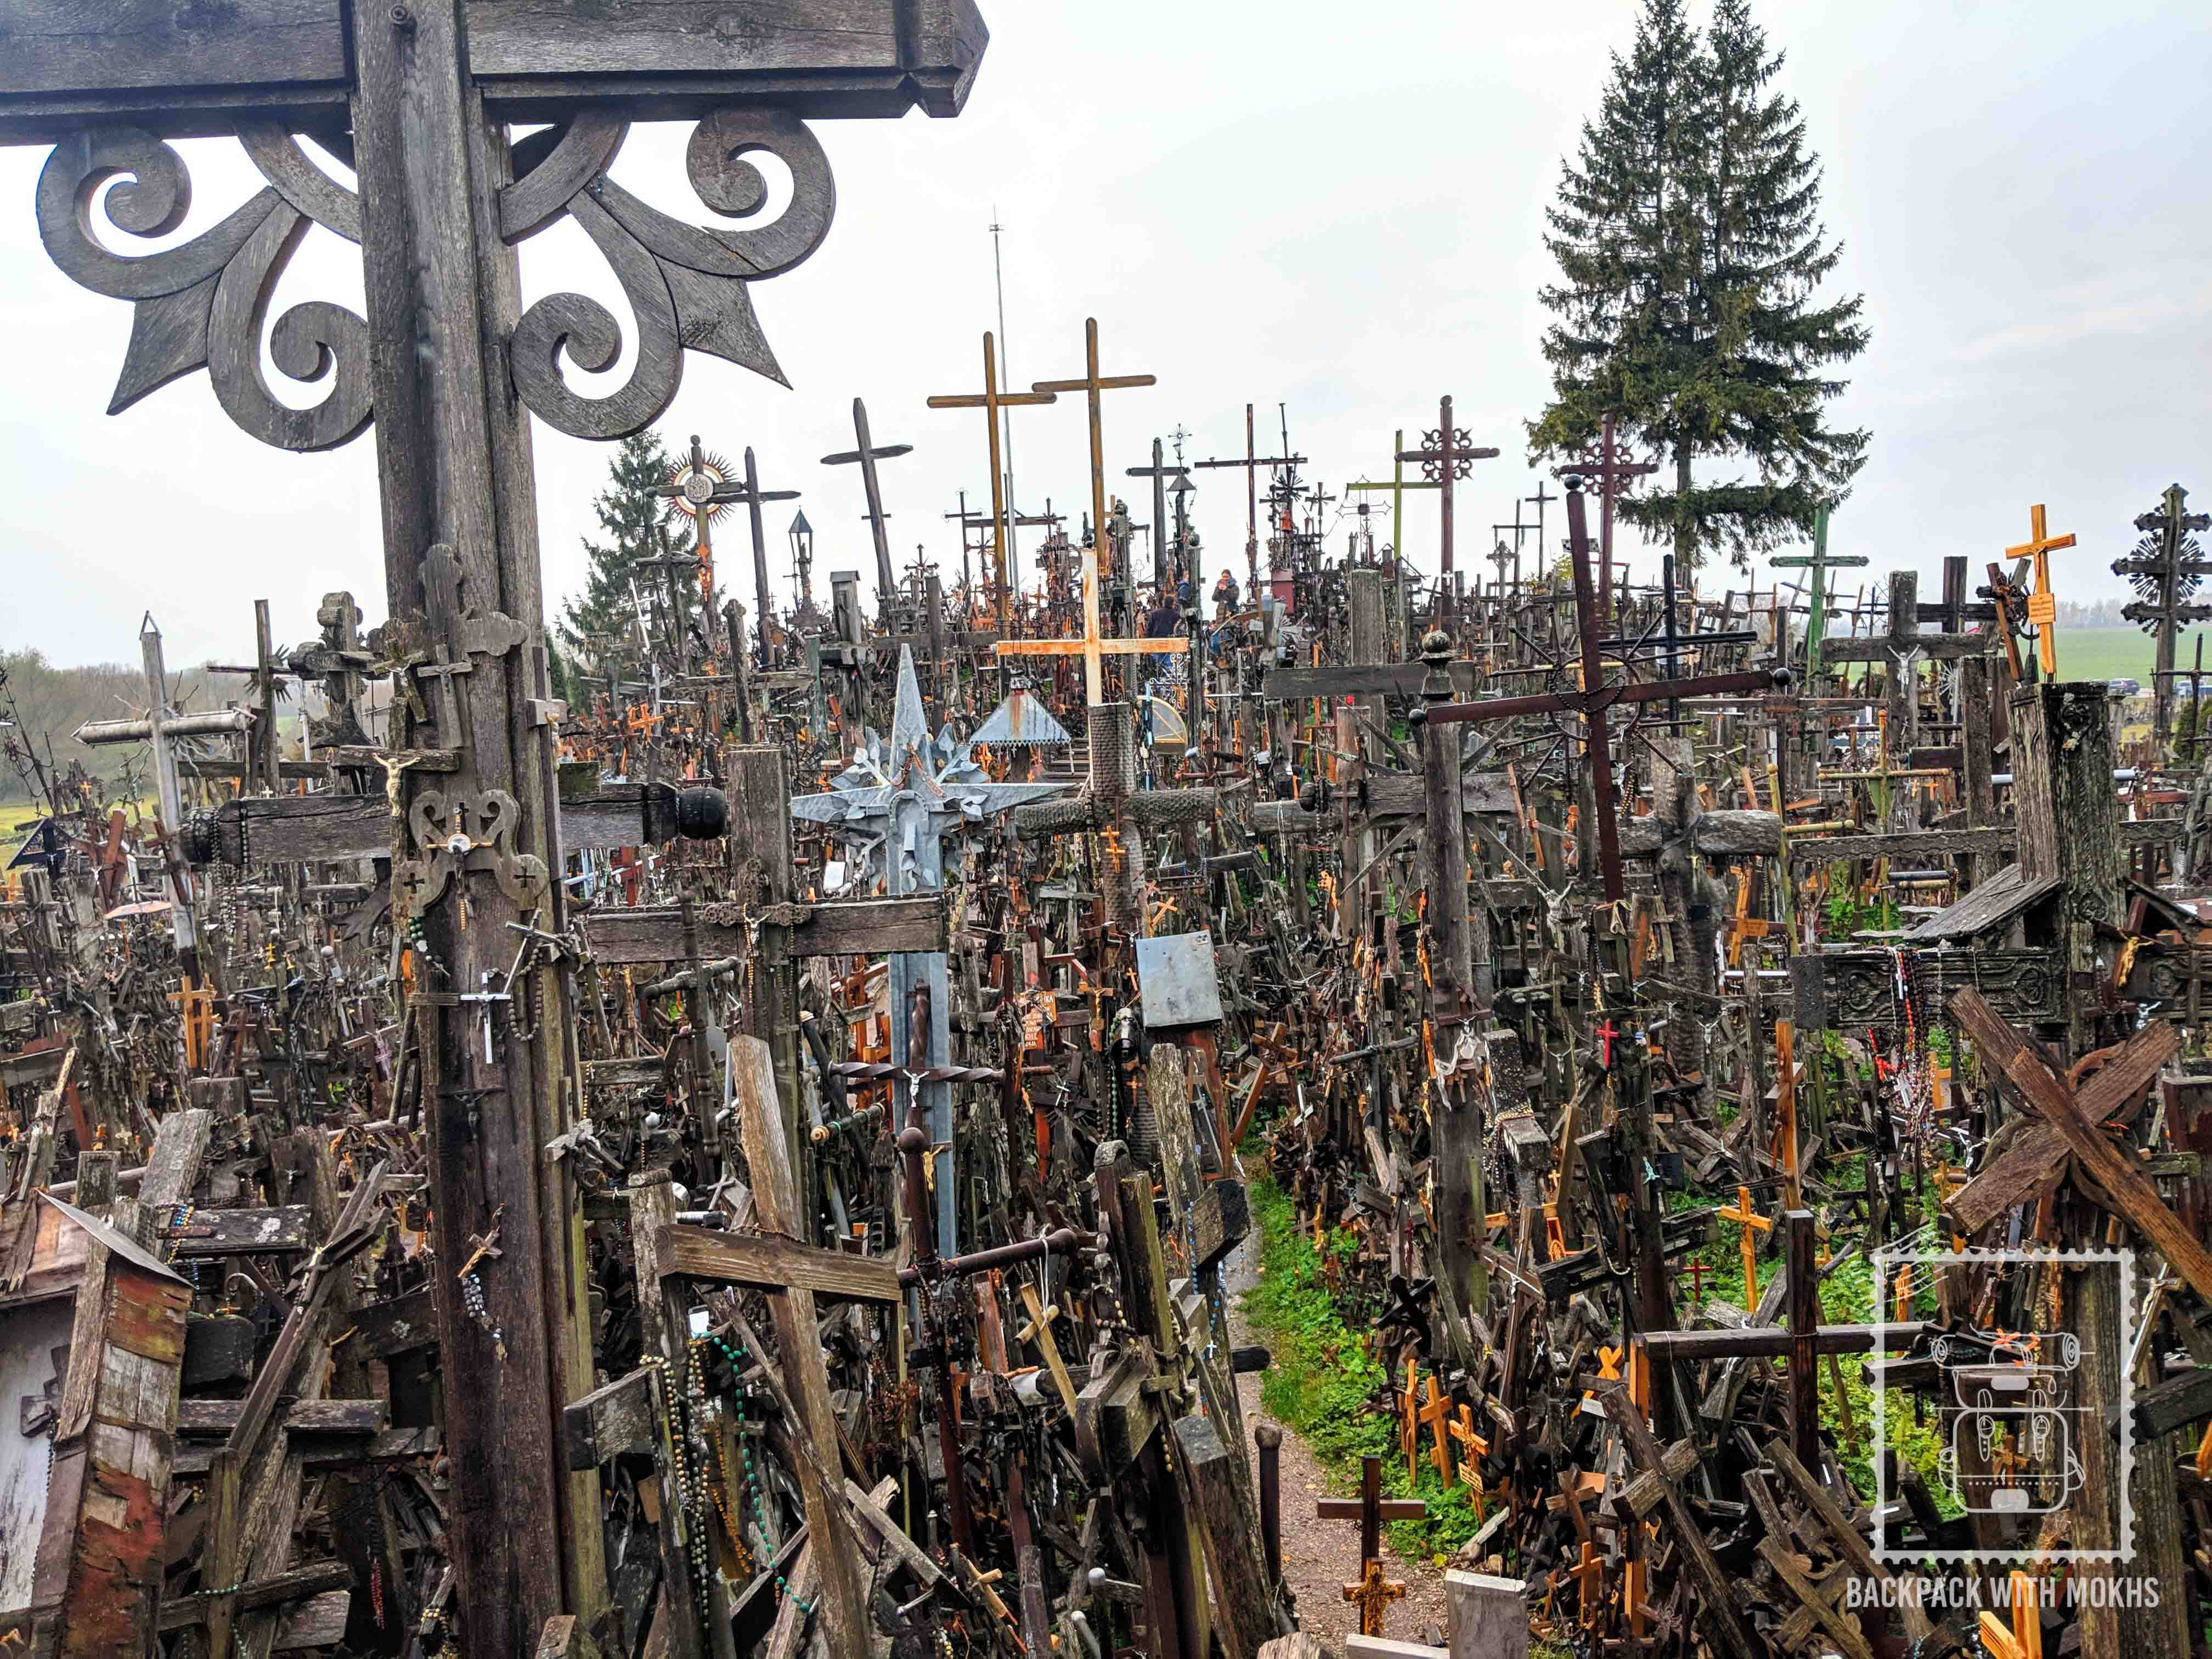 Hill of crosses (2)